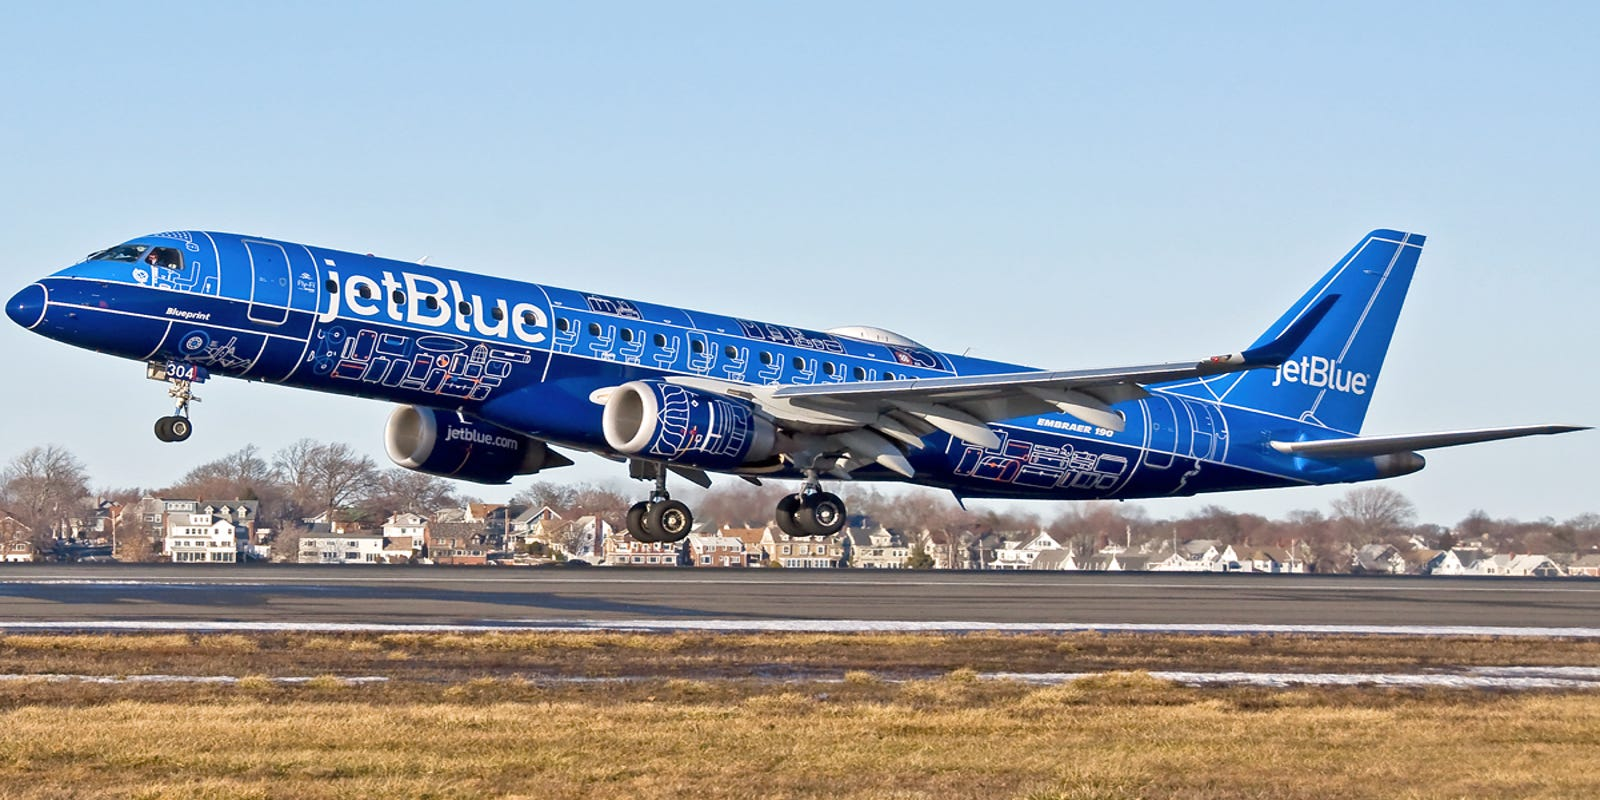 JetBlue rolls out special \'Blueprint\' livery on Embraer E190